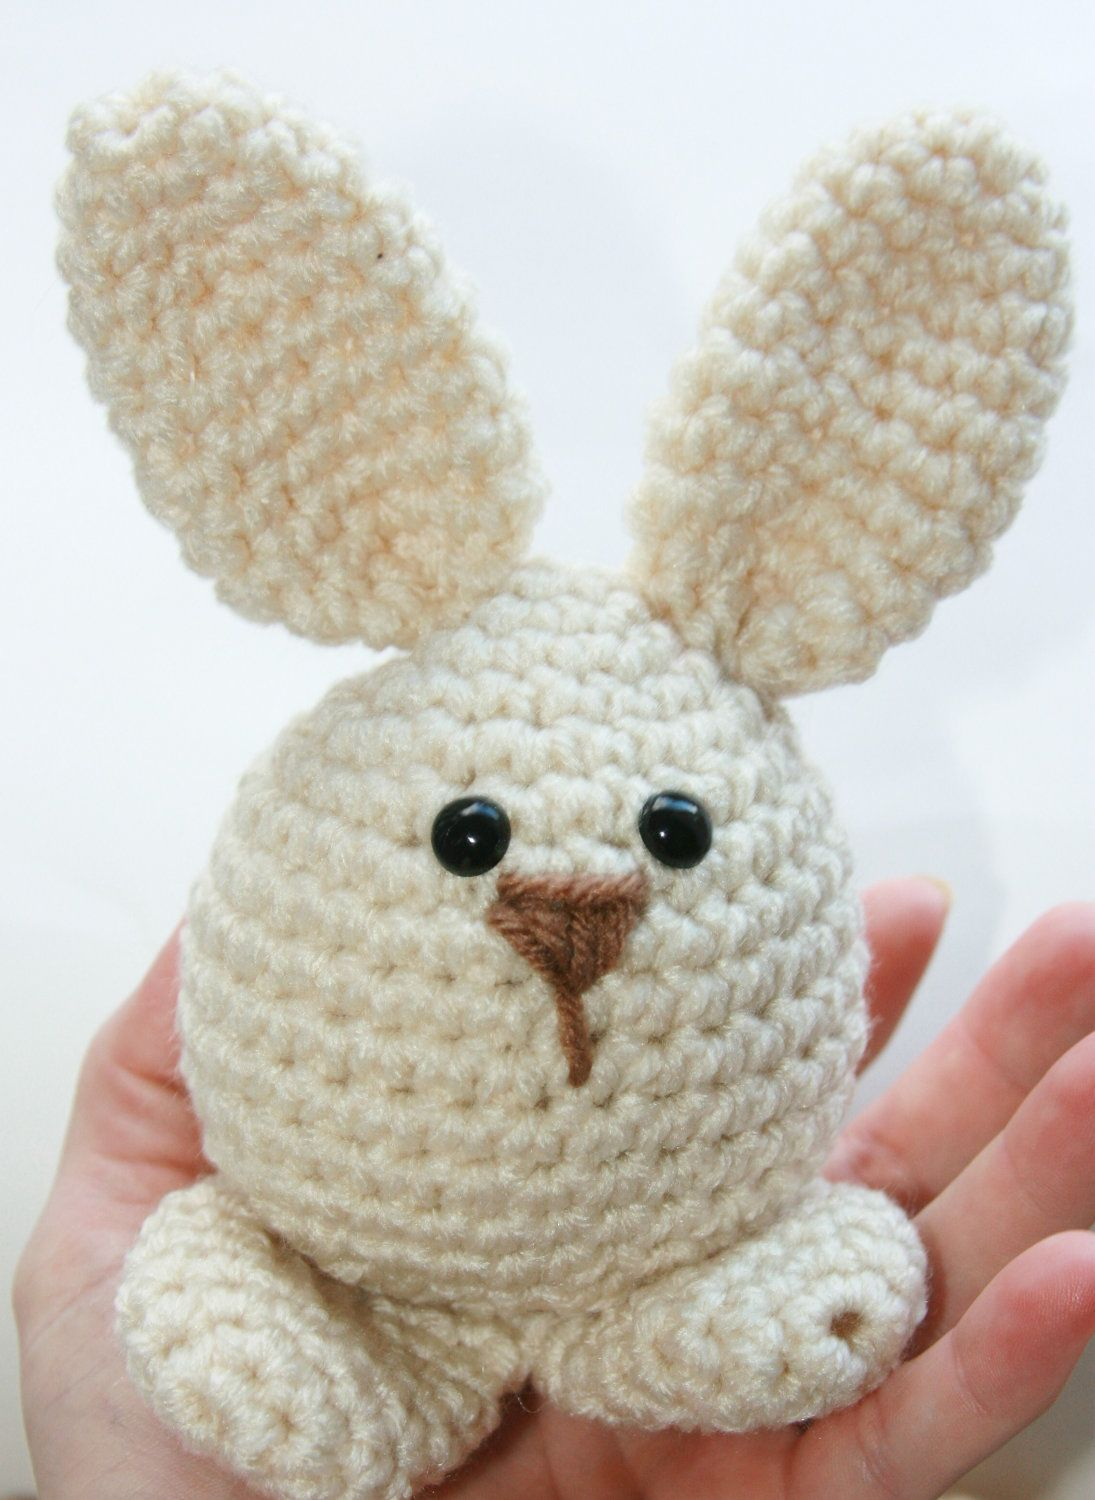 Easter Bunny toy, babies first soft crochet amigurumi rabbit ...